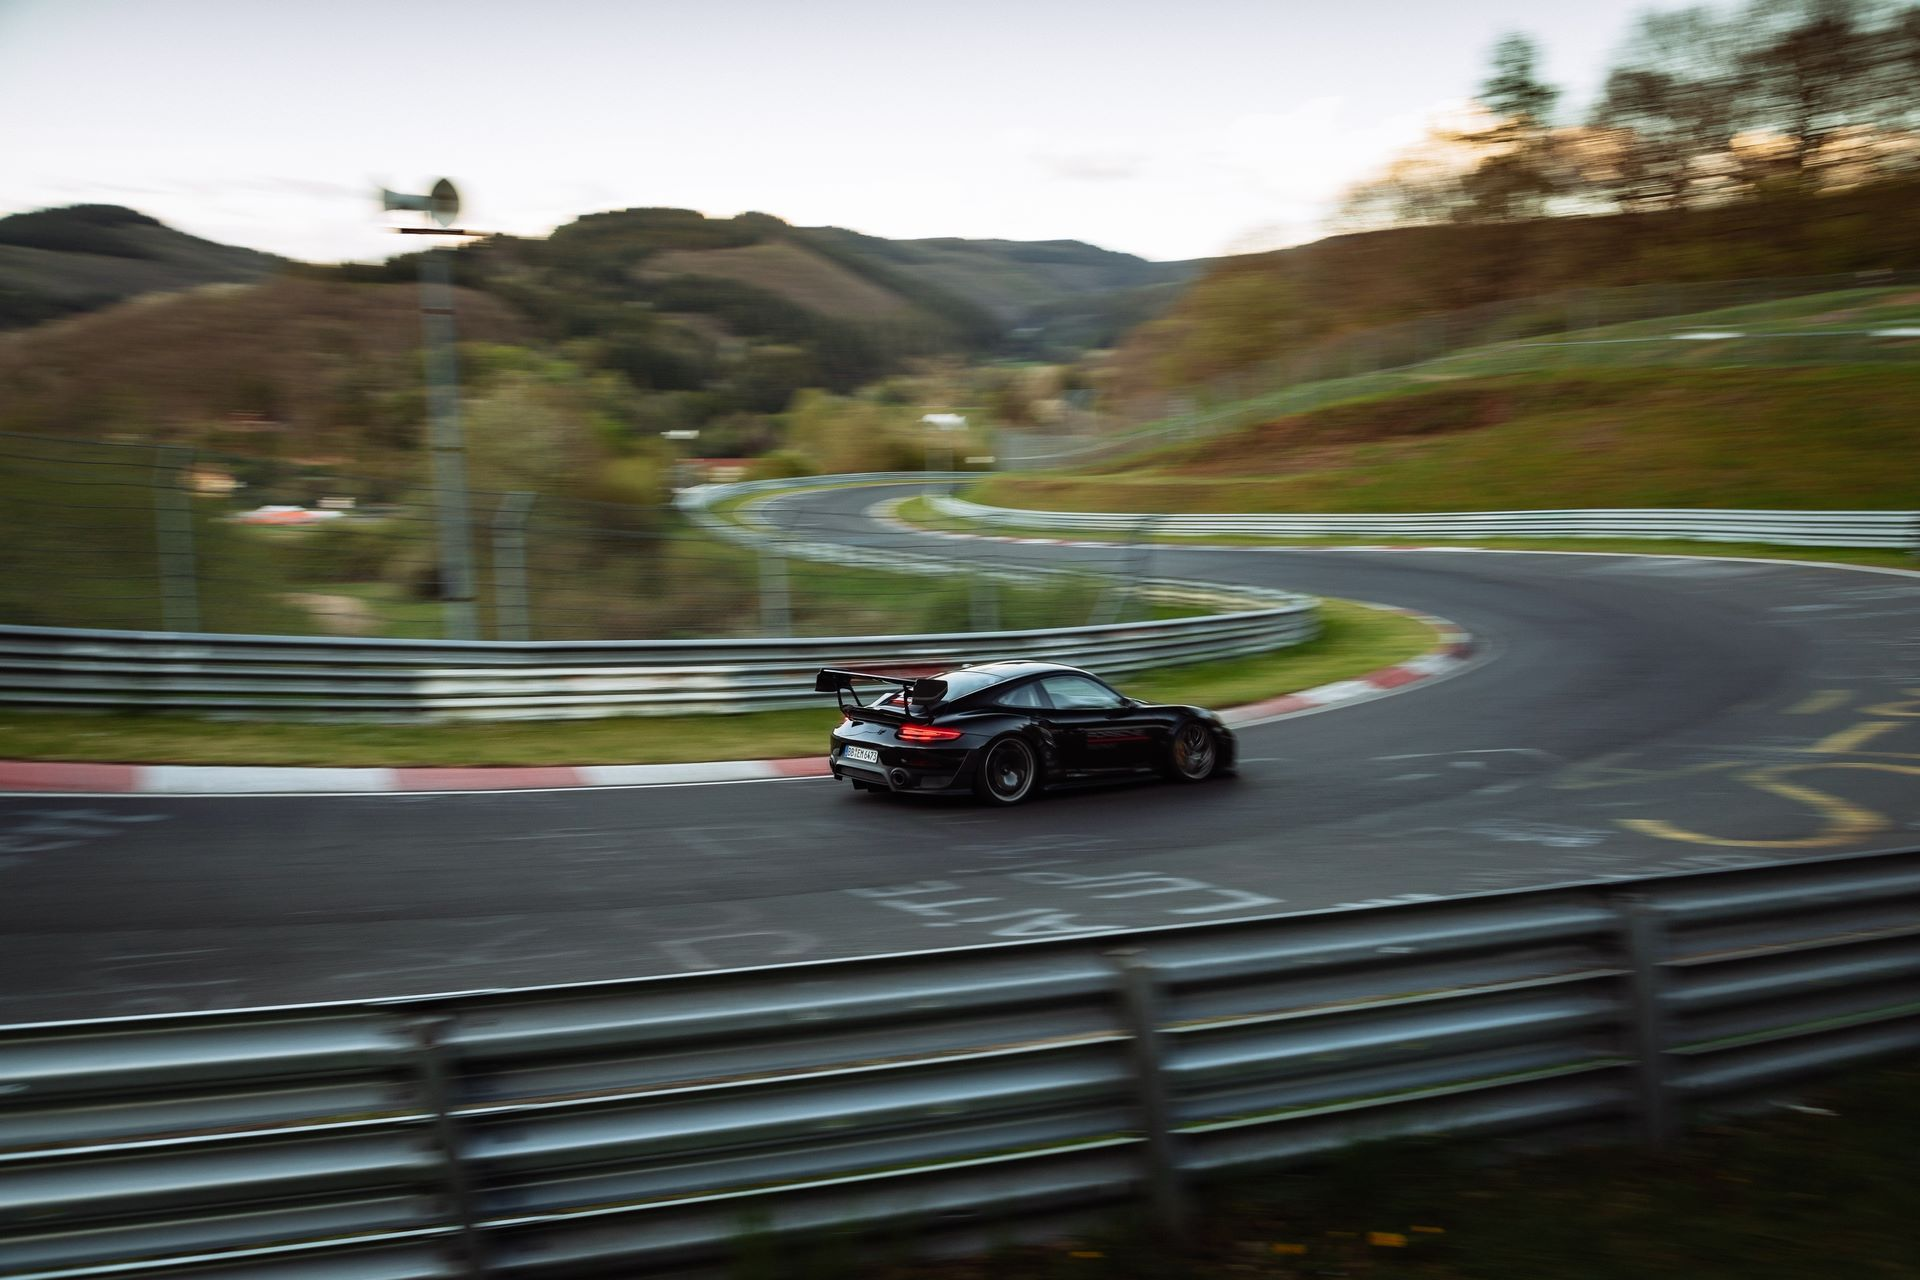 Porsche-911-GT2-RS-Manthey-Performance-Kit-Nurburgring-Record-4